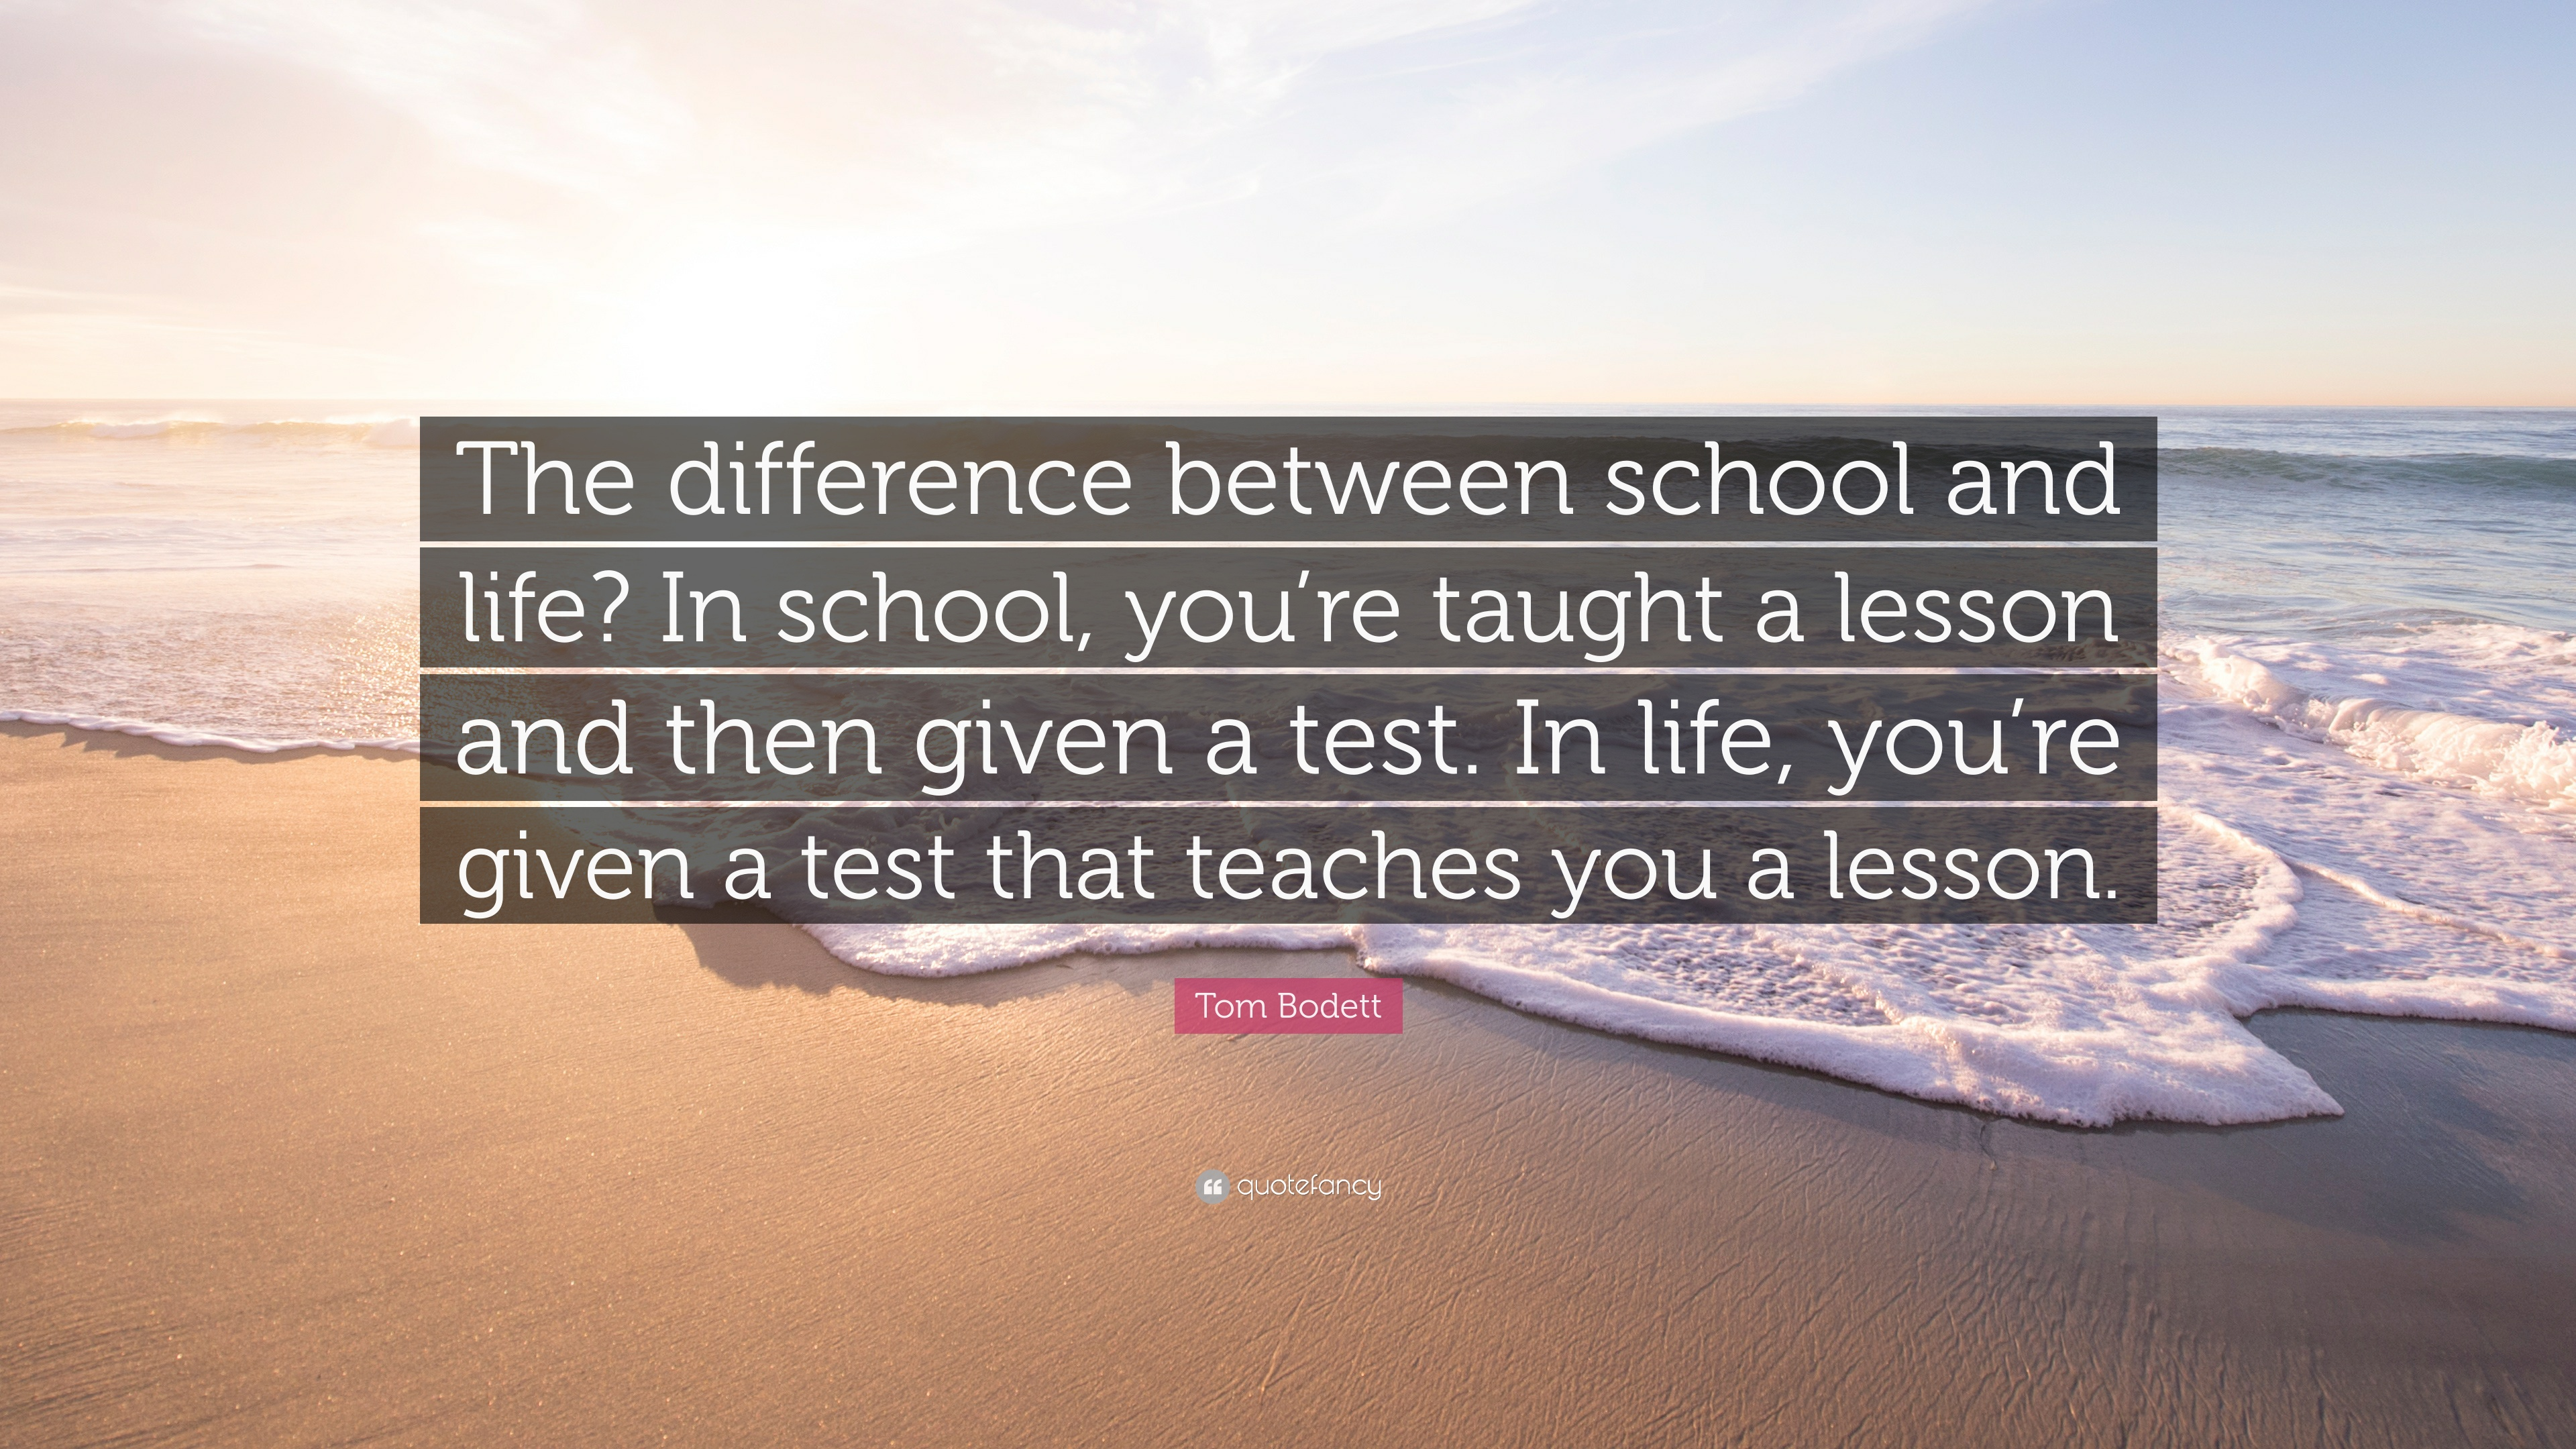 in school youre taught a lesson and then given a test meaning